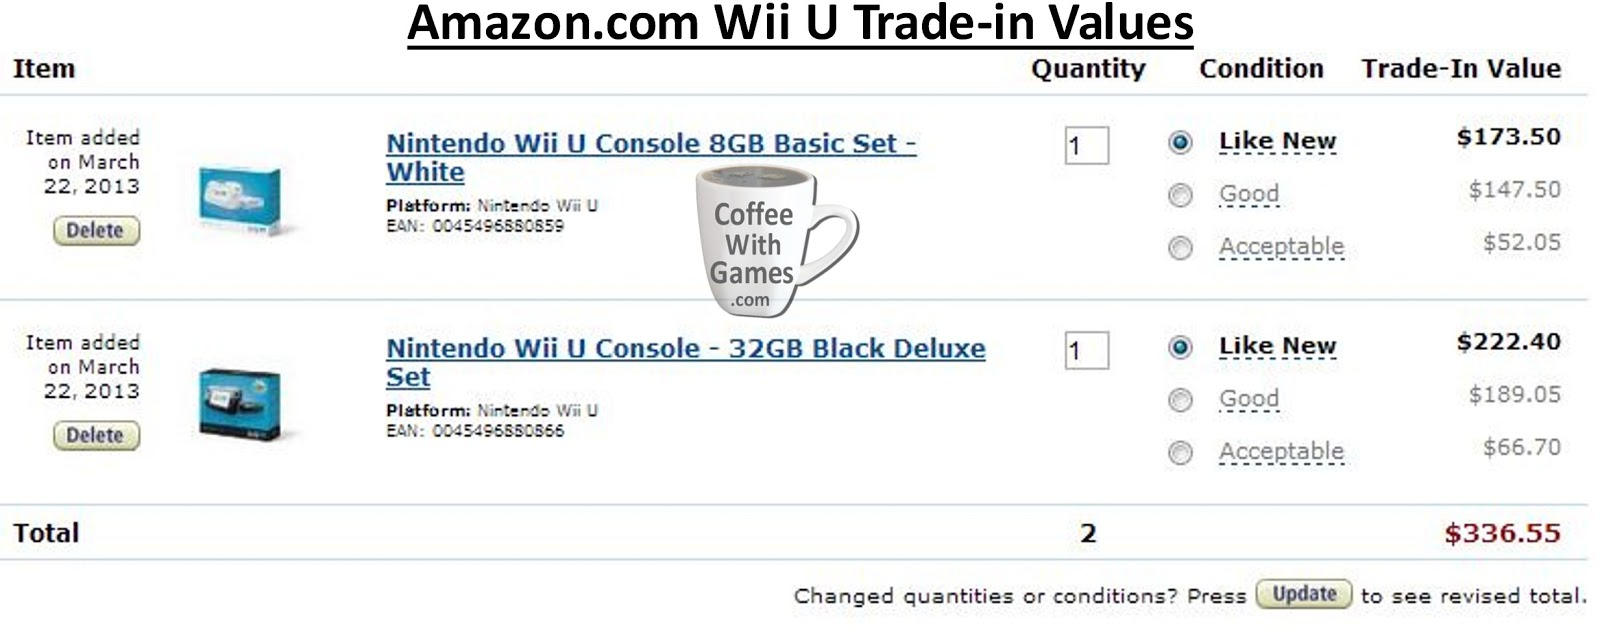 Coffee With Games Current Wii U Trade In Values Amazon